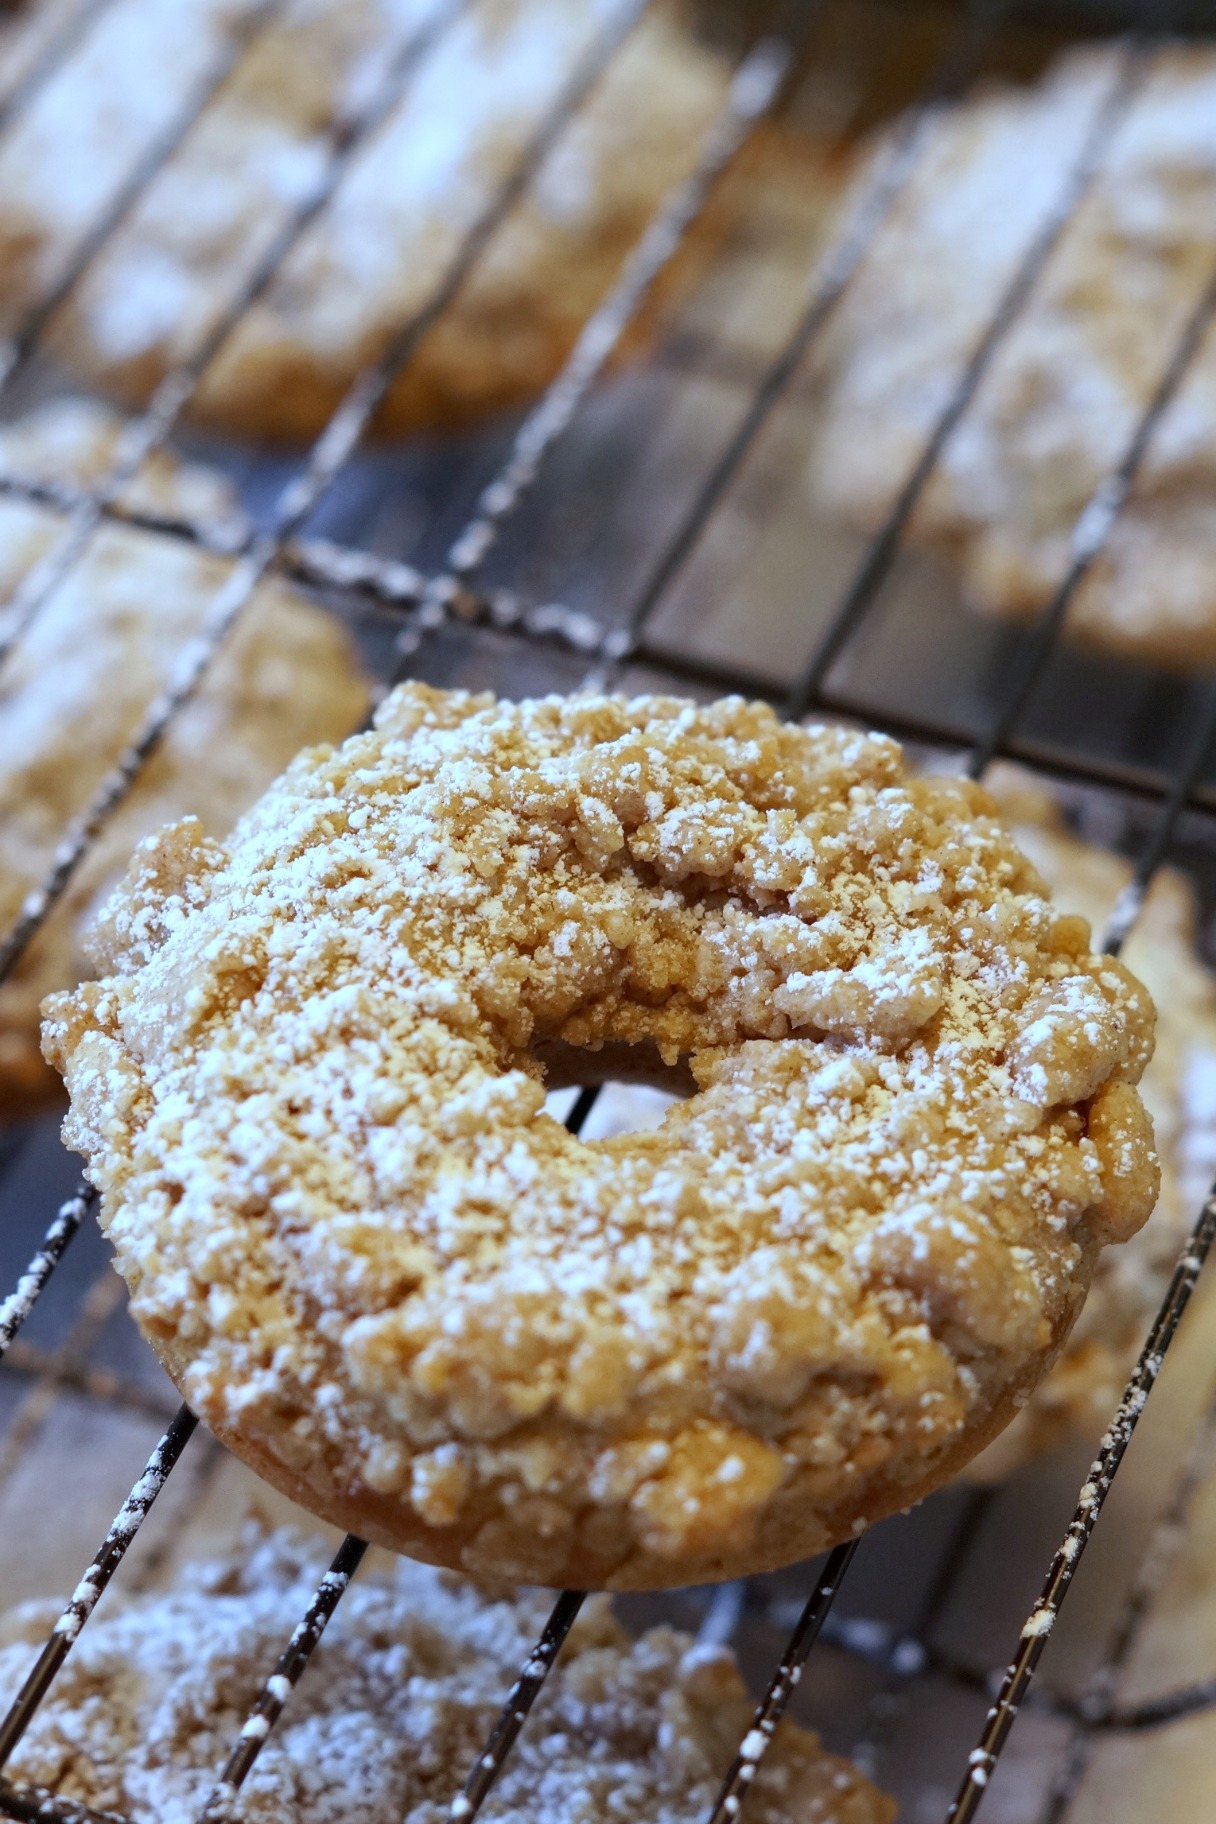 Looking for the perfect pairing for a hot cup of coffee? Look no further than this easy to make coffee cake donut recipe. Grab your oven mitt and get baking!